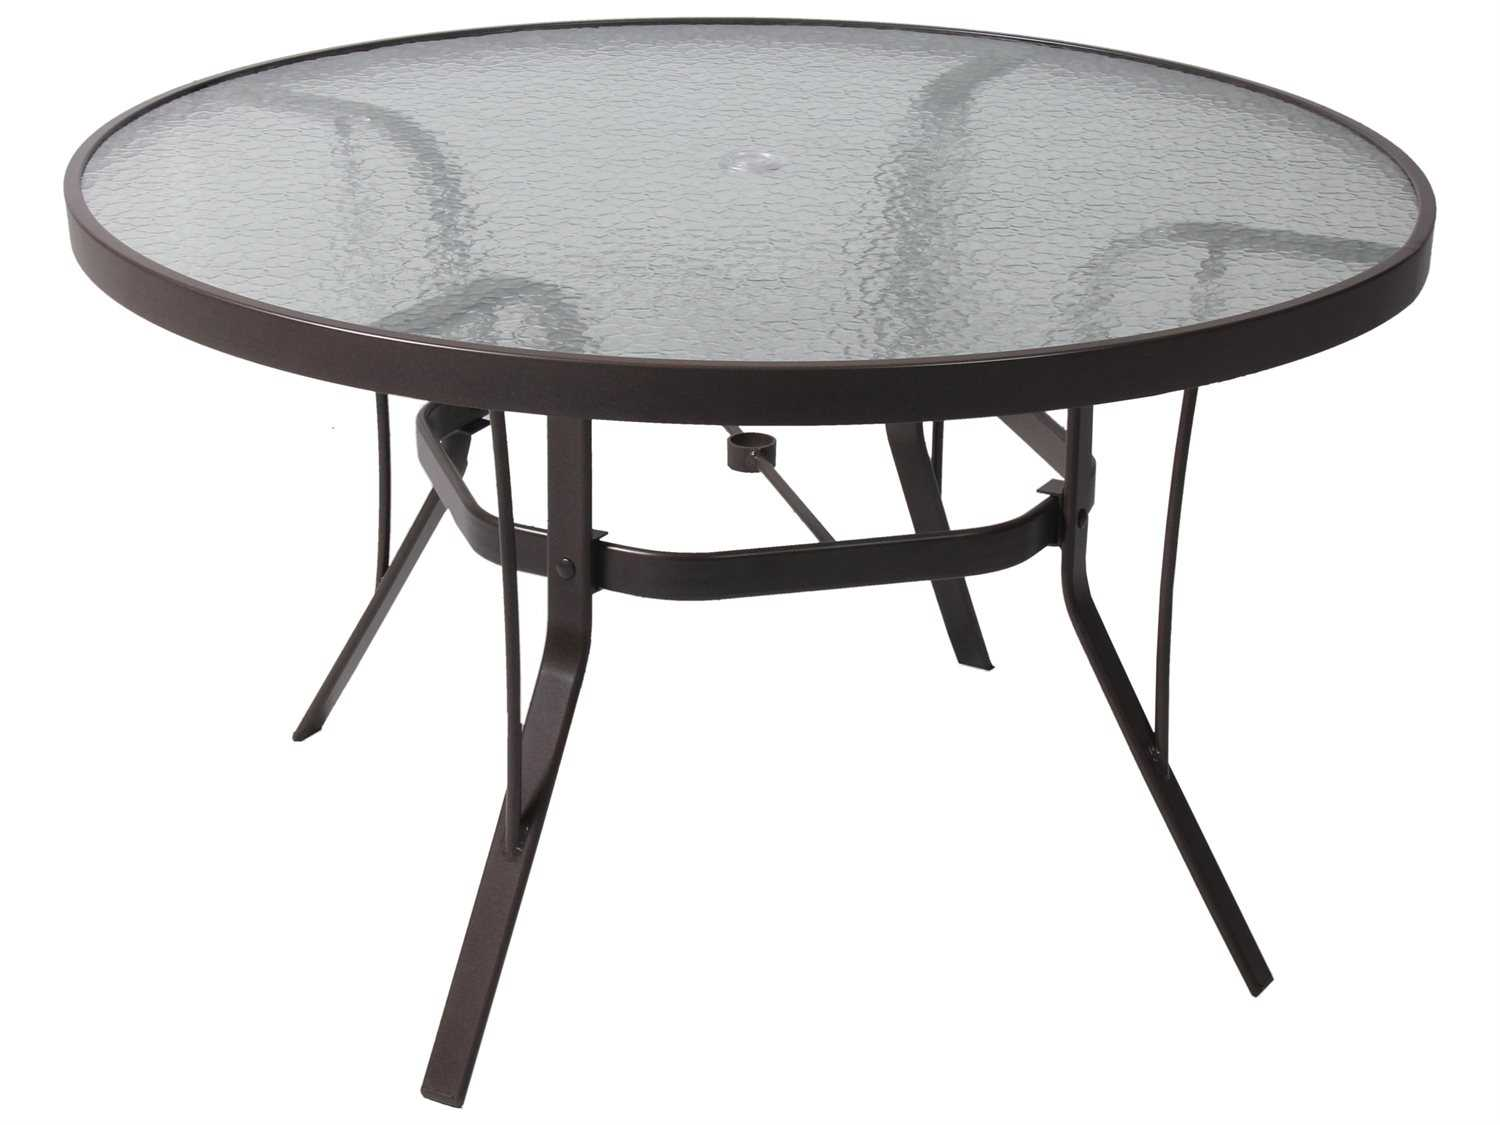 Suncoast Cast Aluminum 36 39 39 Round Glass Top Dining Table 36kd